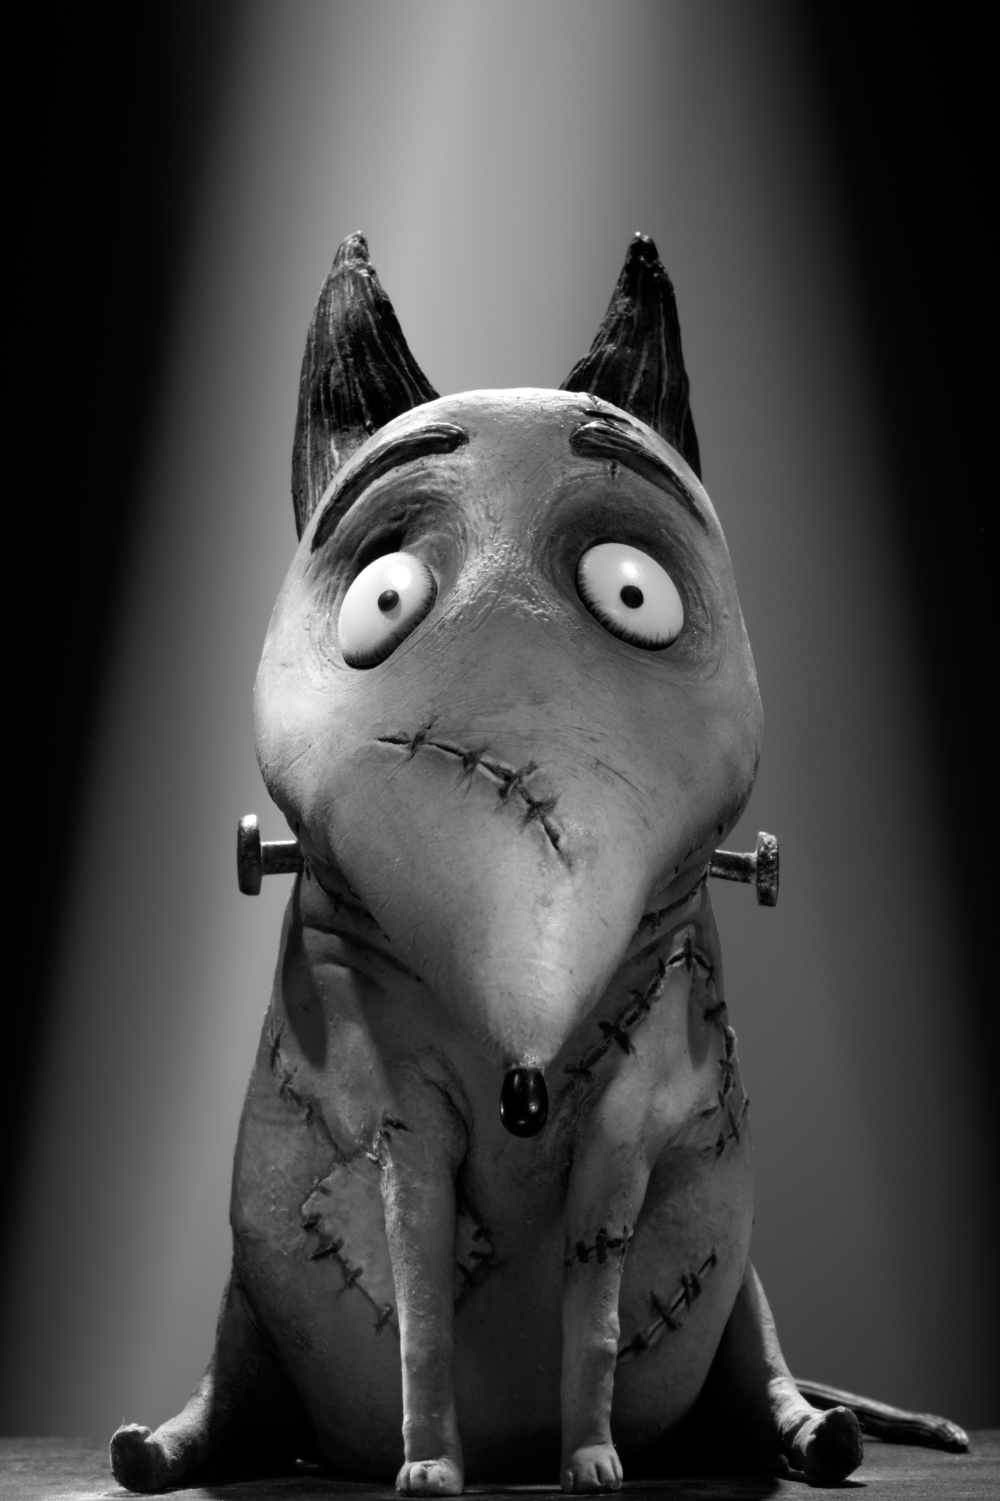 Frankenweenie Sparky the dog reanimated